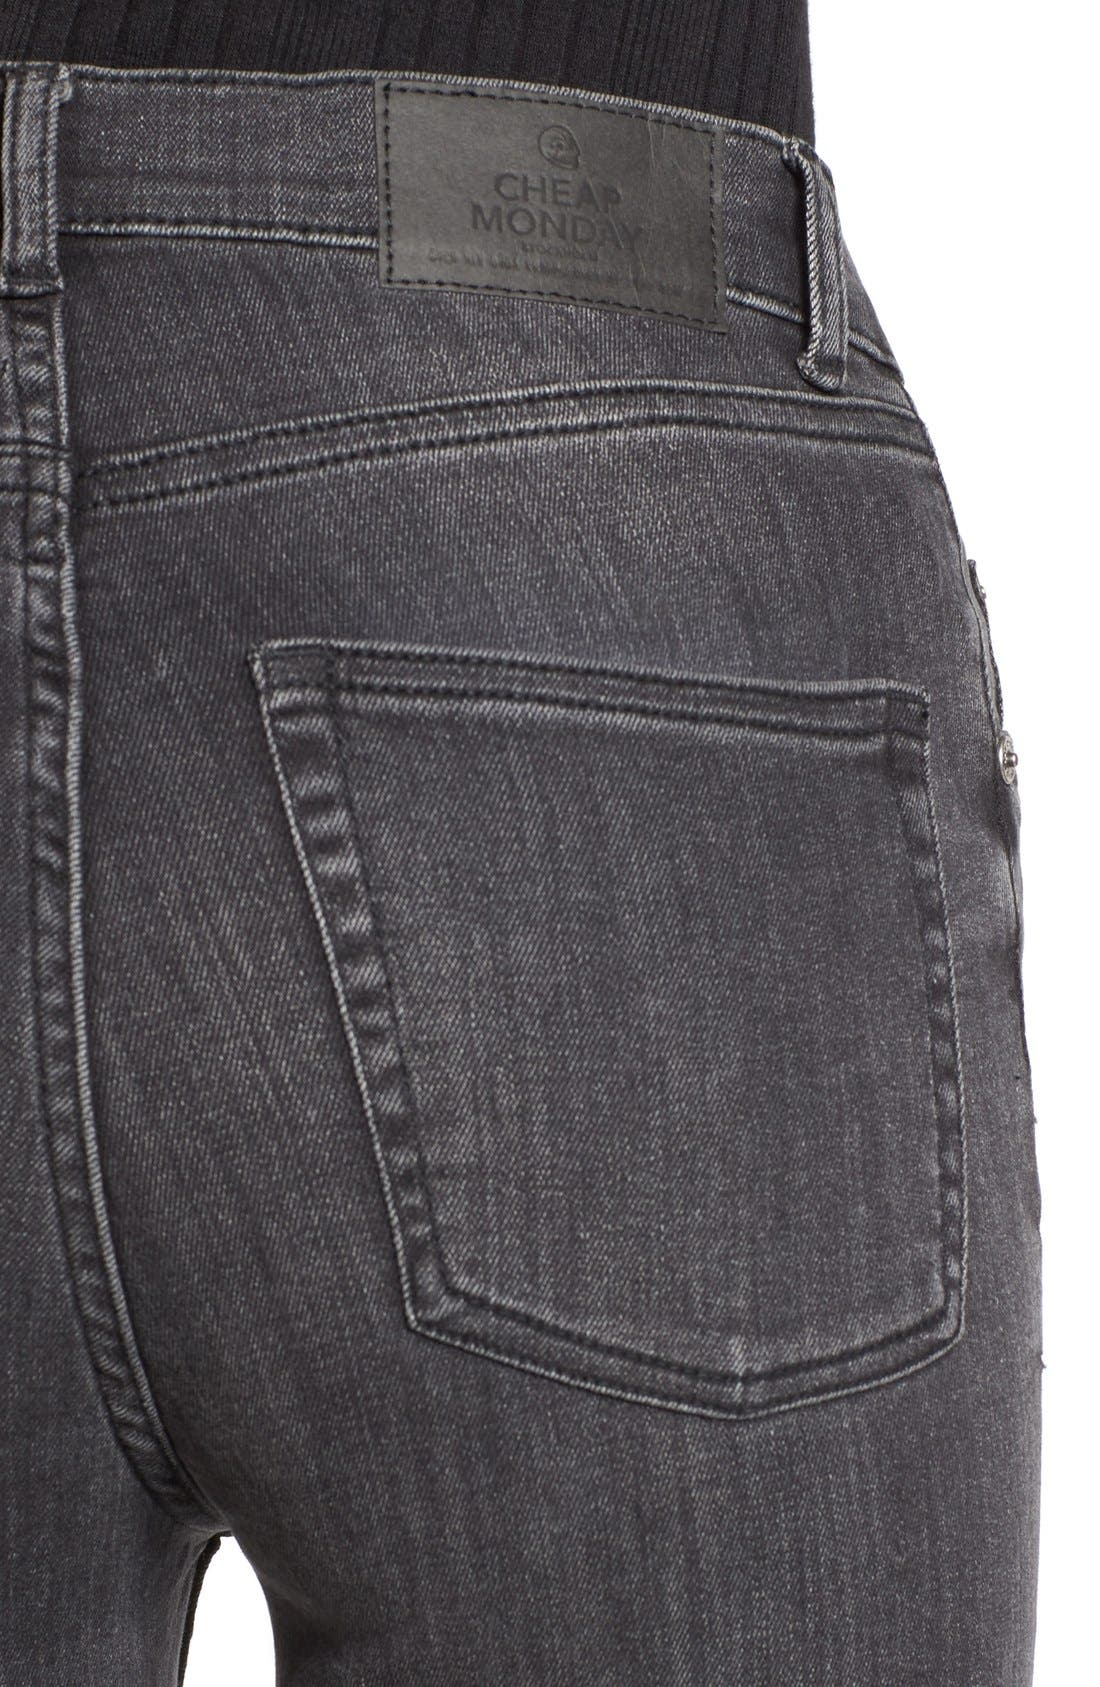 Alternate Image 4  - Cheap Monday Second Skin High Rise Skinny Jeans (Shadow)